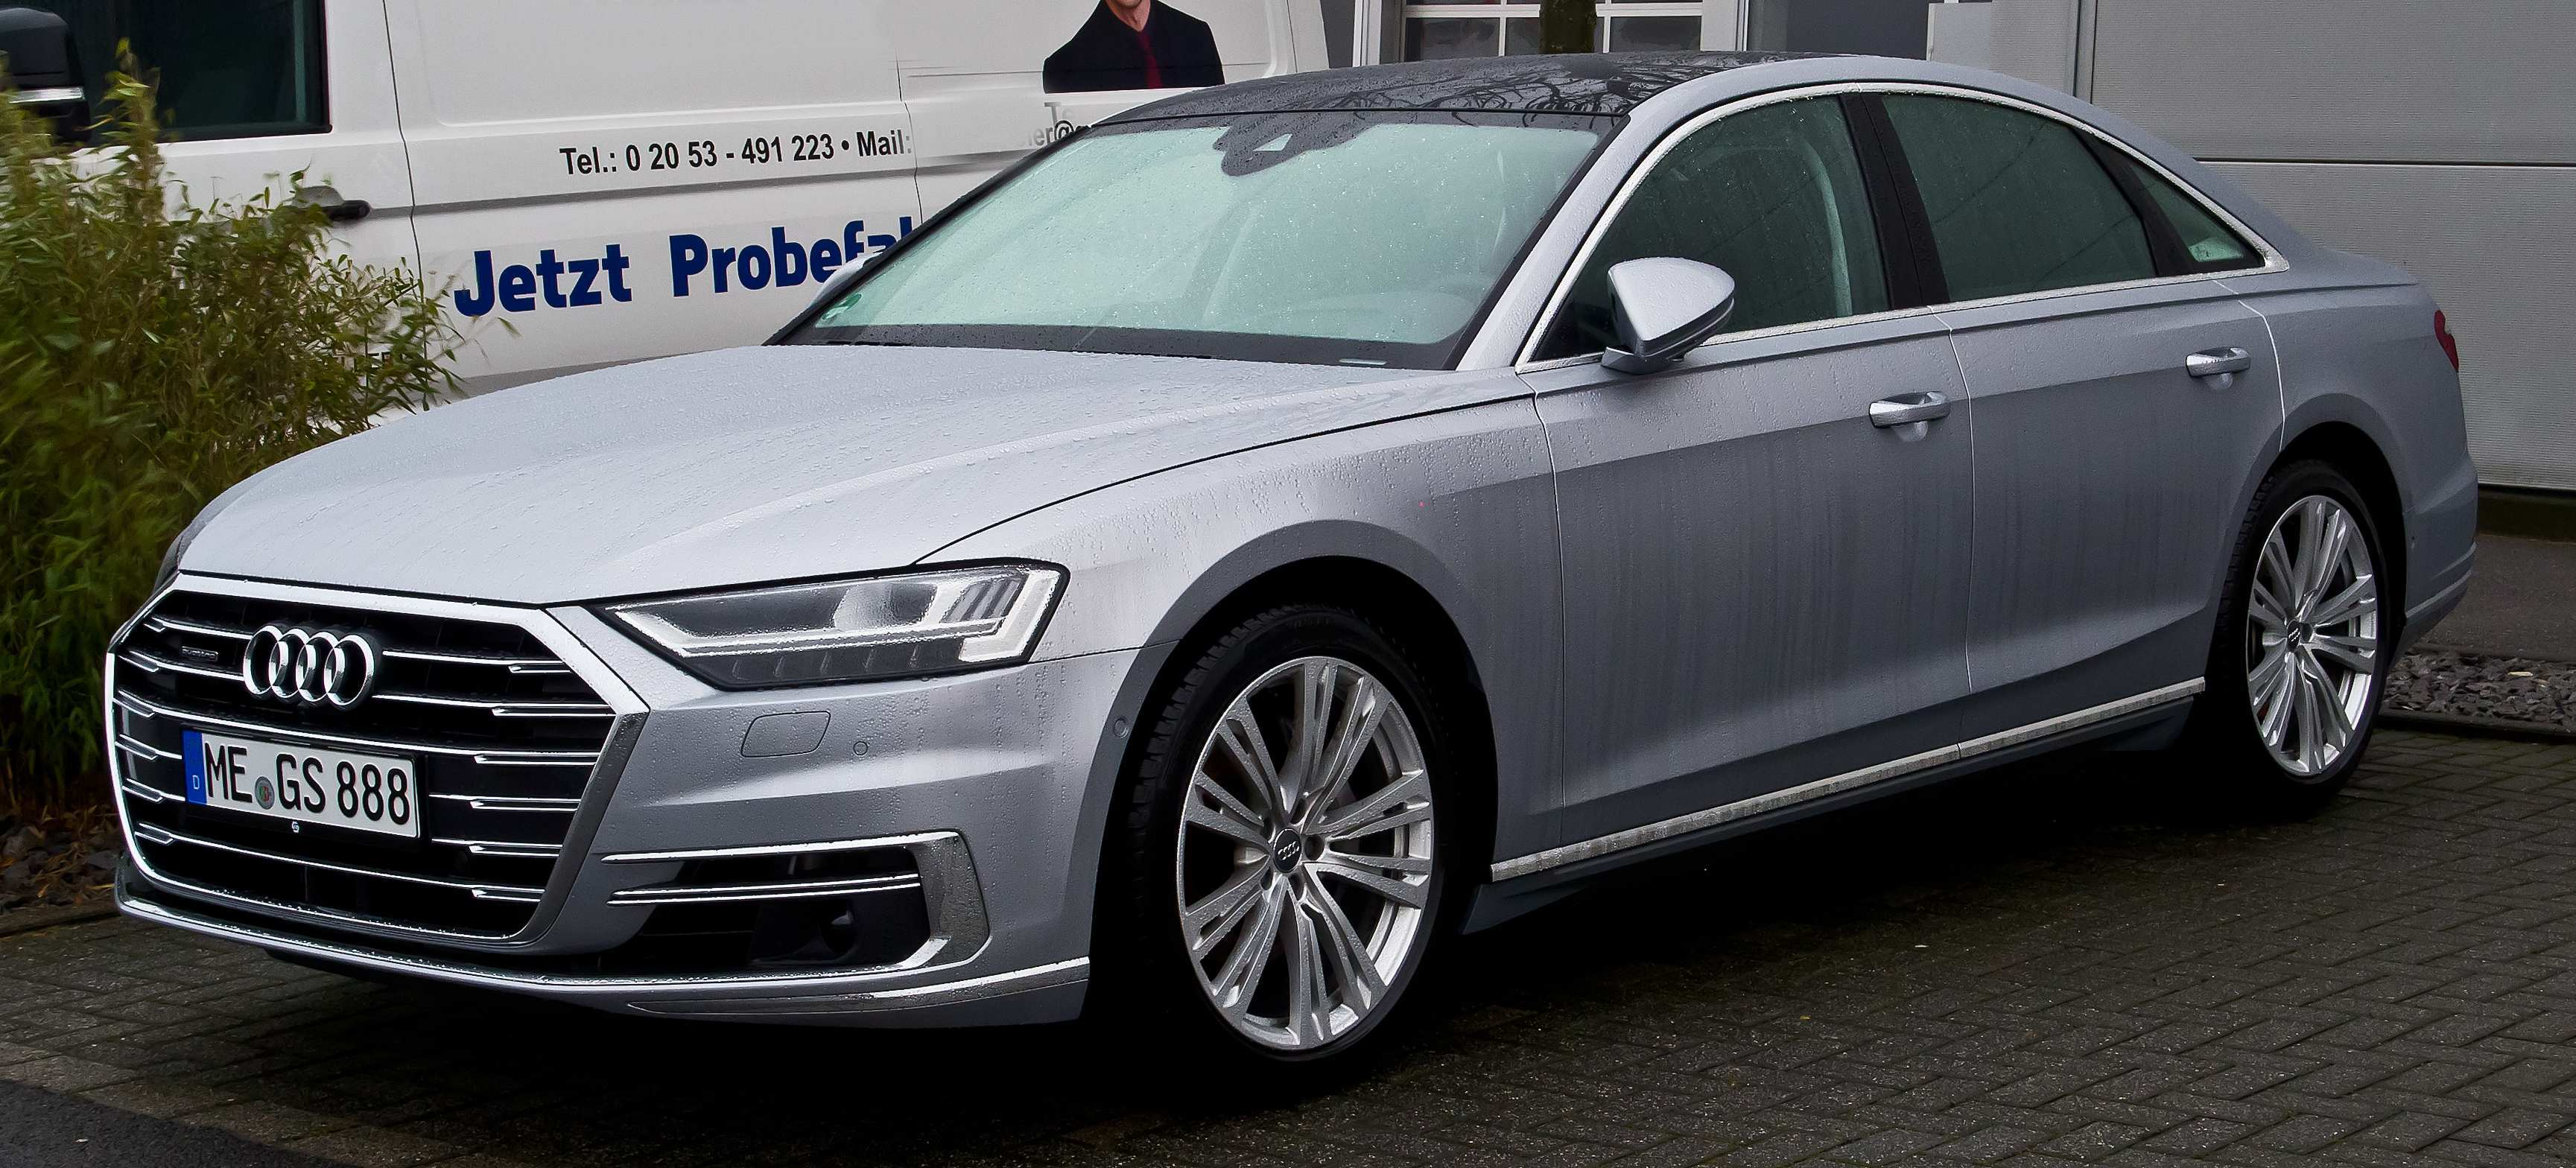 42 The Audi A8 Picture